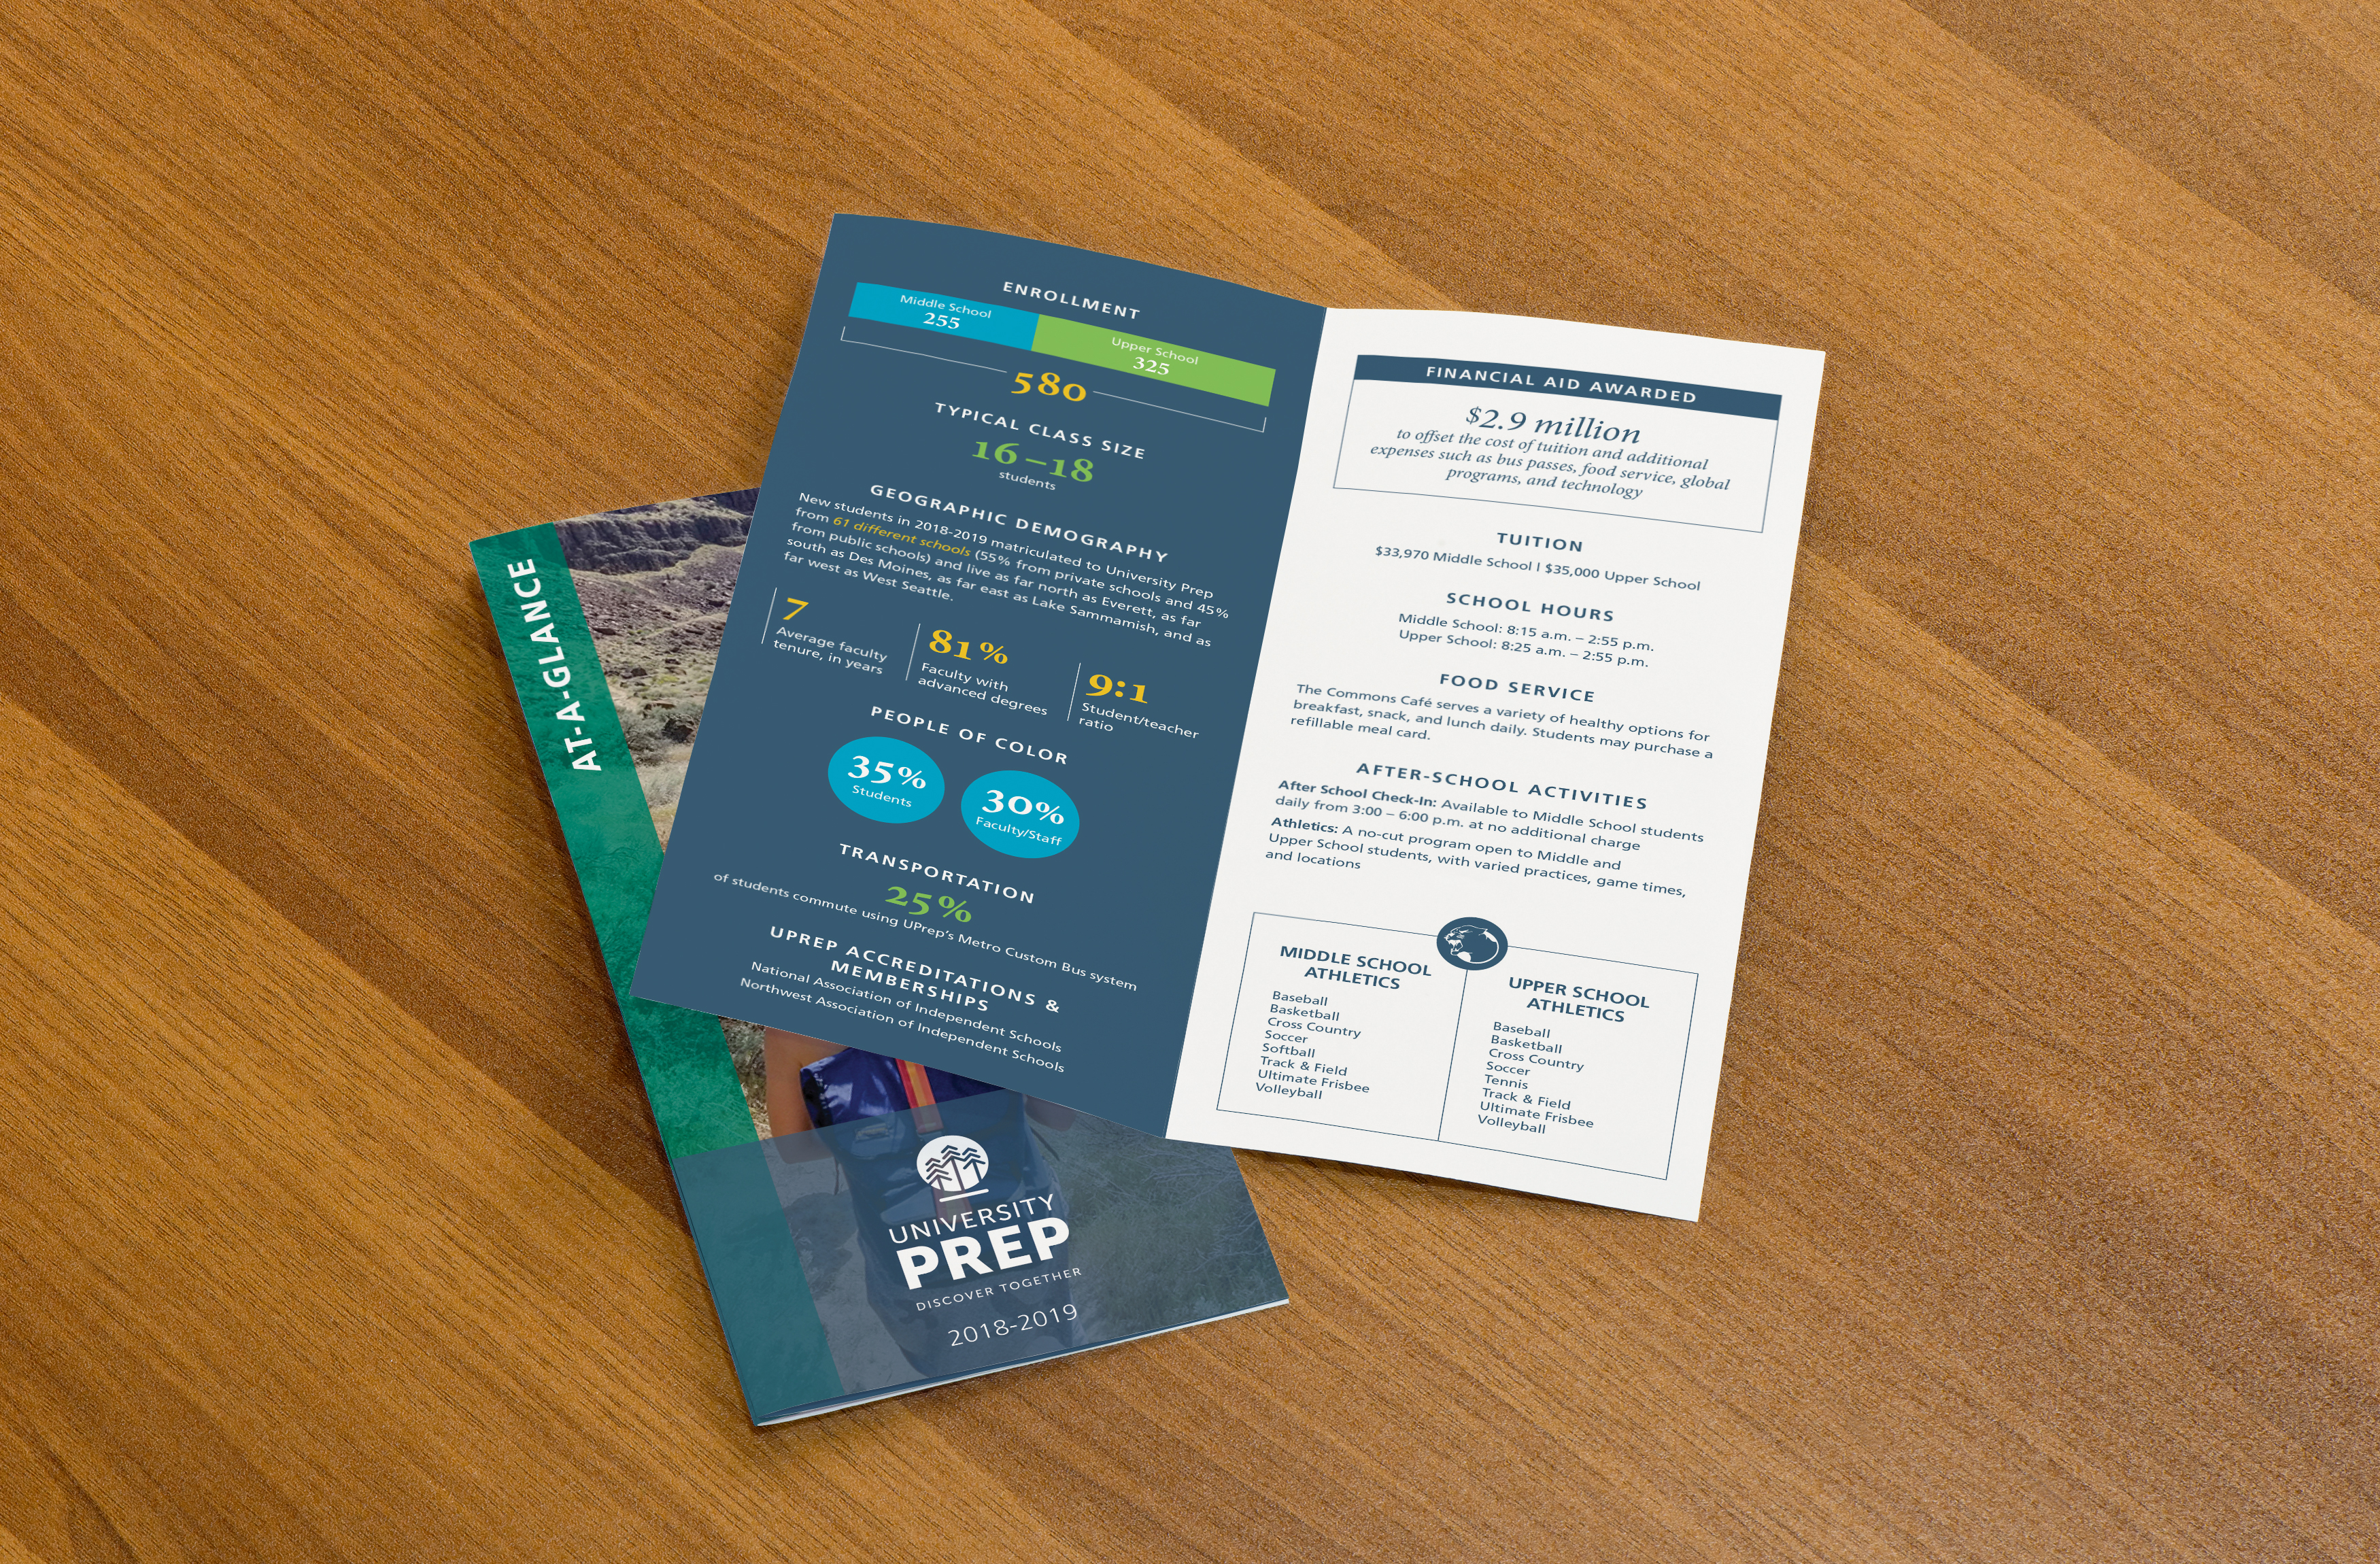 University Prep At-A-Glance Brochure